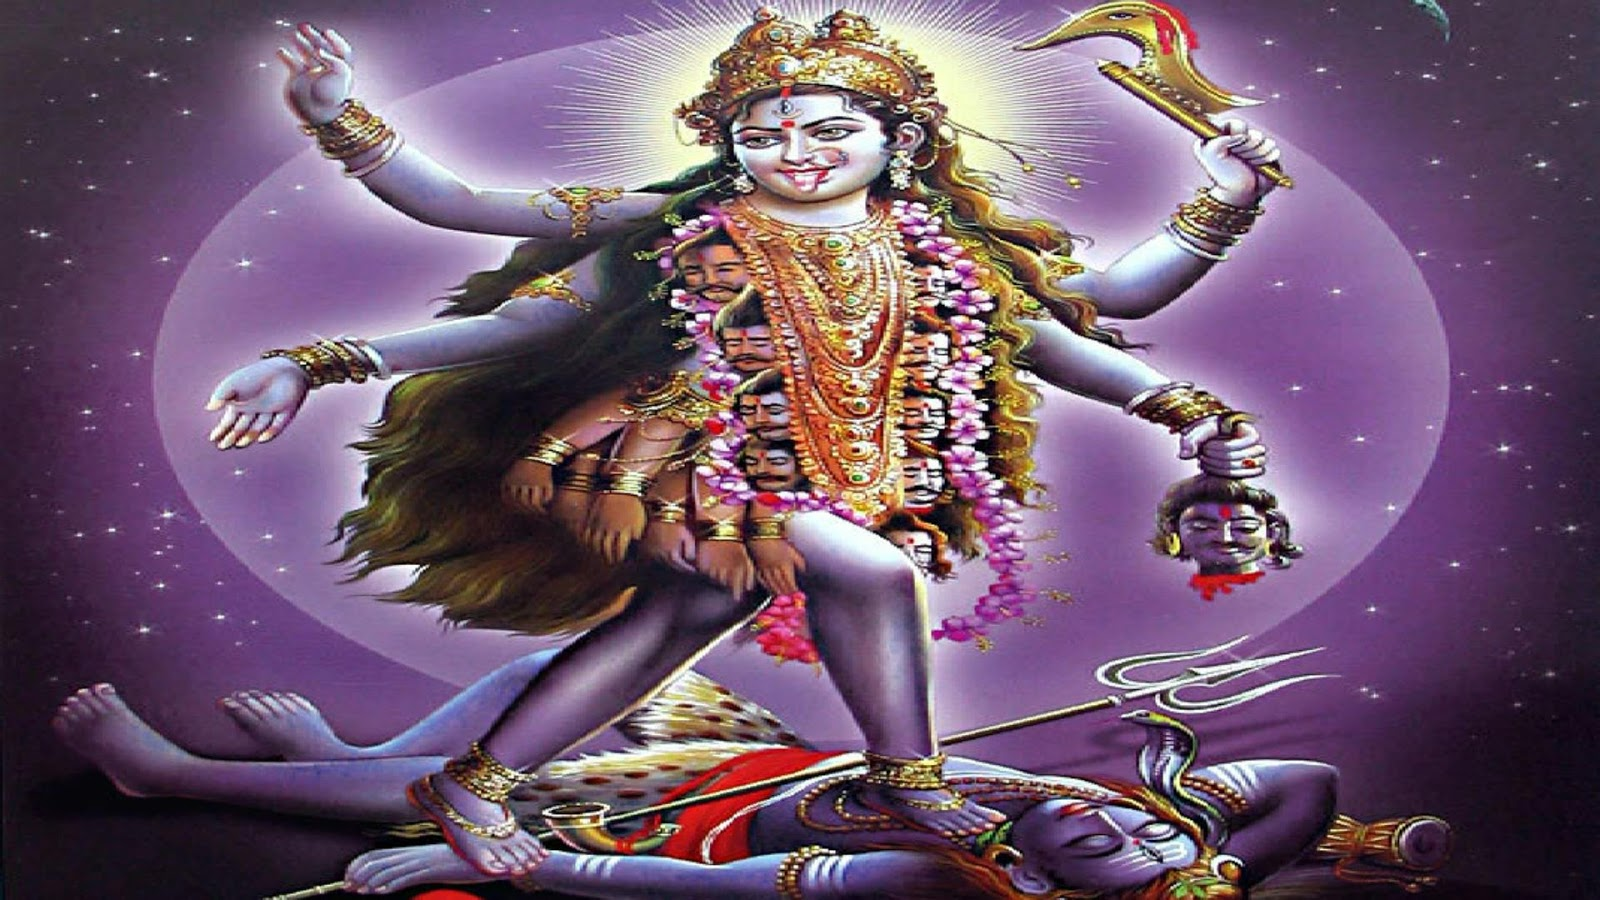 Extremely Powerful Kali Mantra To Destroy Enemies | Mantra Science